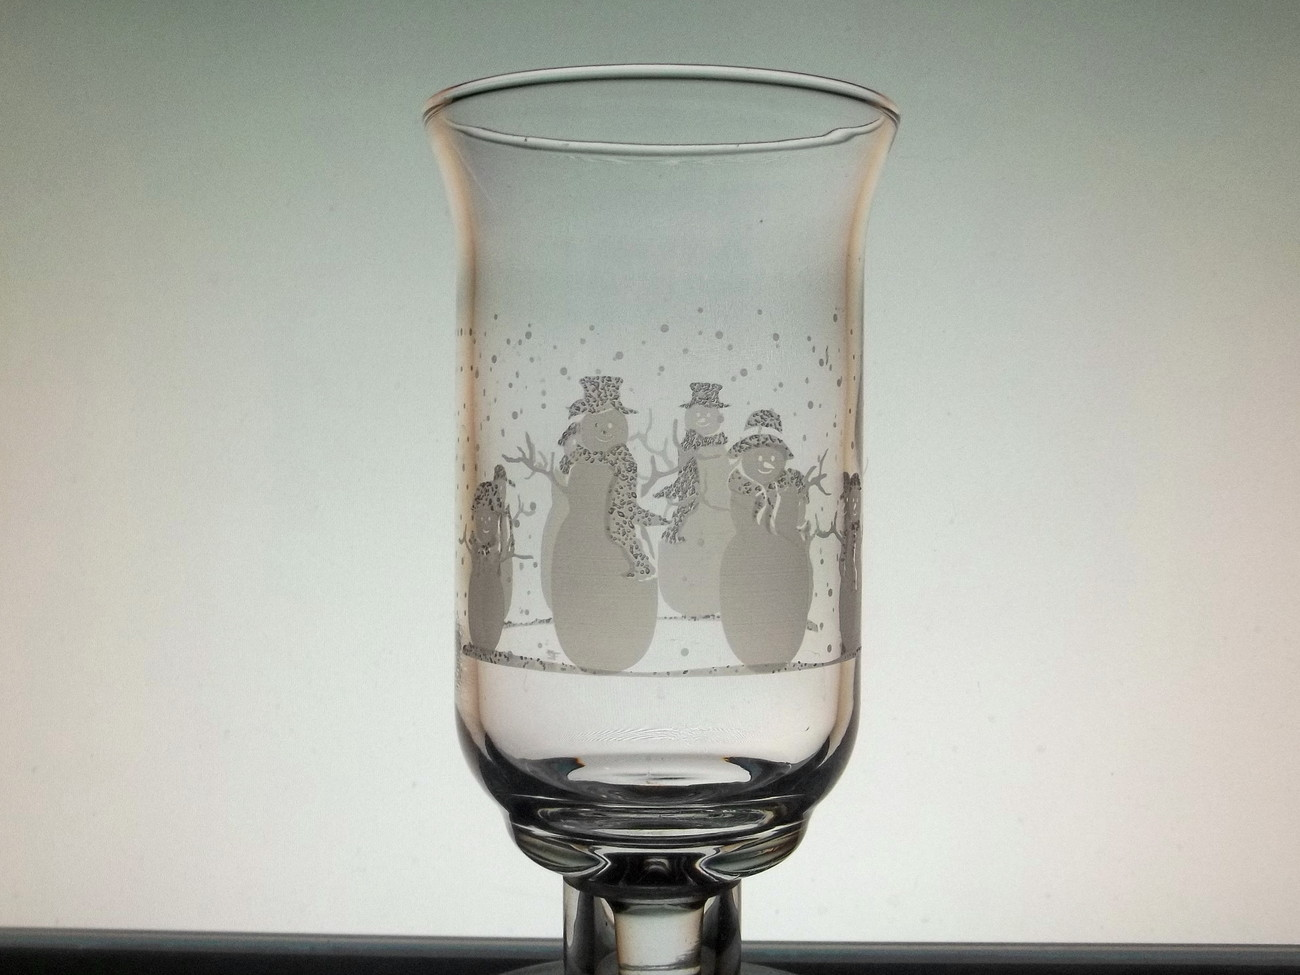 Home Interiors Peg Votive Holder Cup Glass Snowman Family